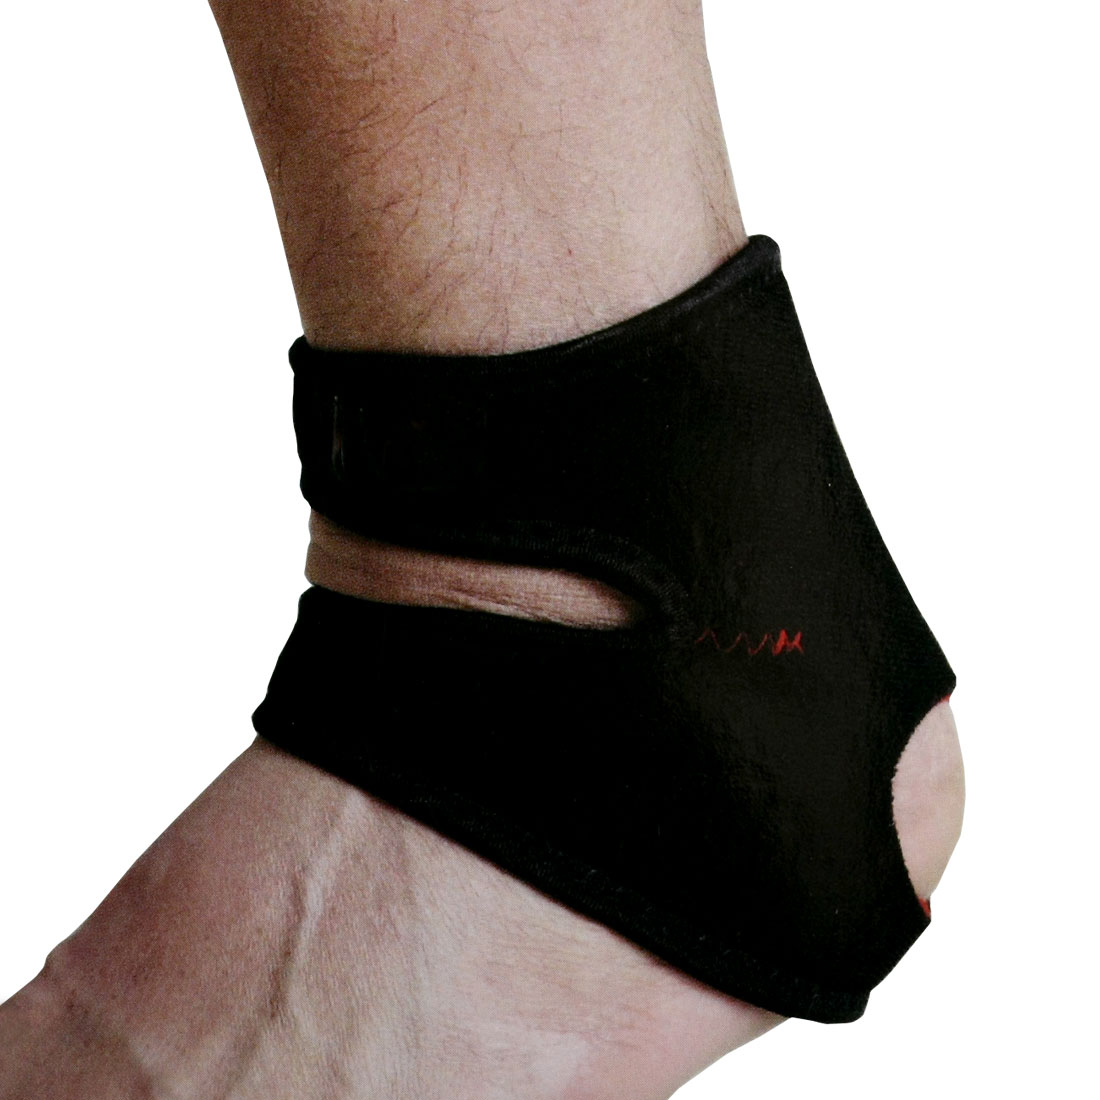 Dual Hoop Loop Closure Design Black Red Stretchy Left Ankle Foot Protector Support